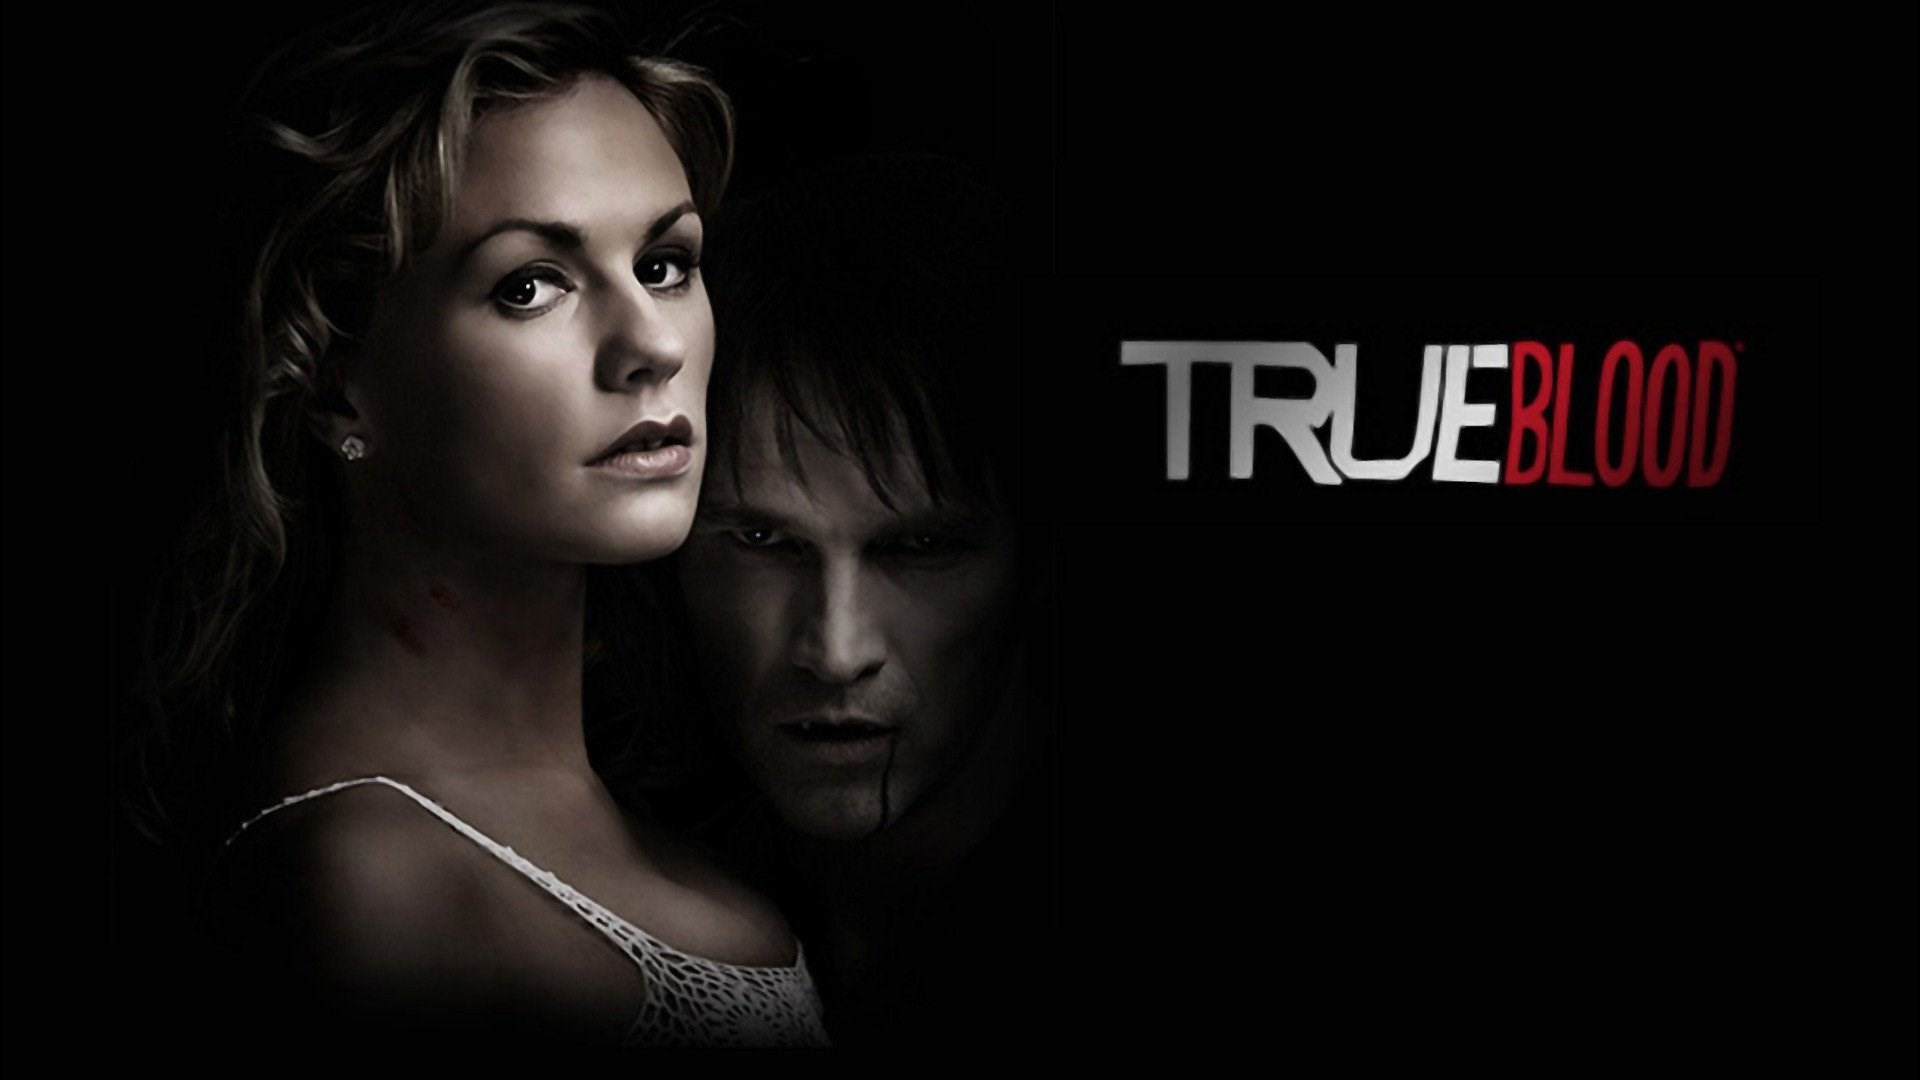 Hbo True Blood Wallpaper 183 ①